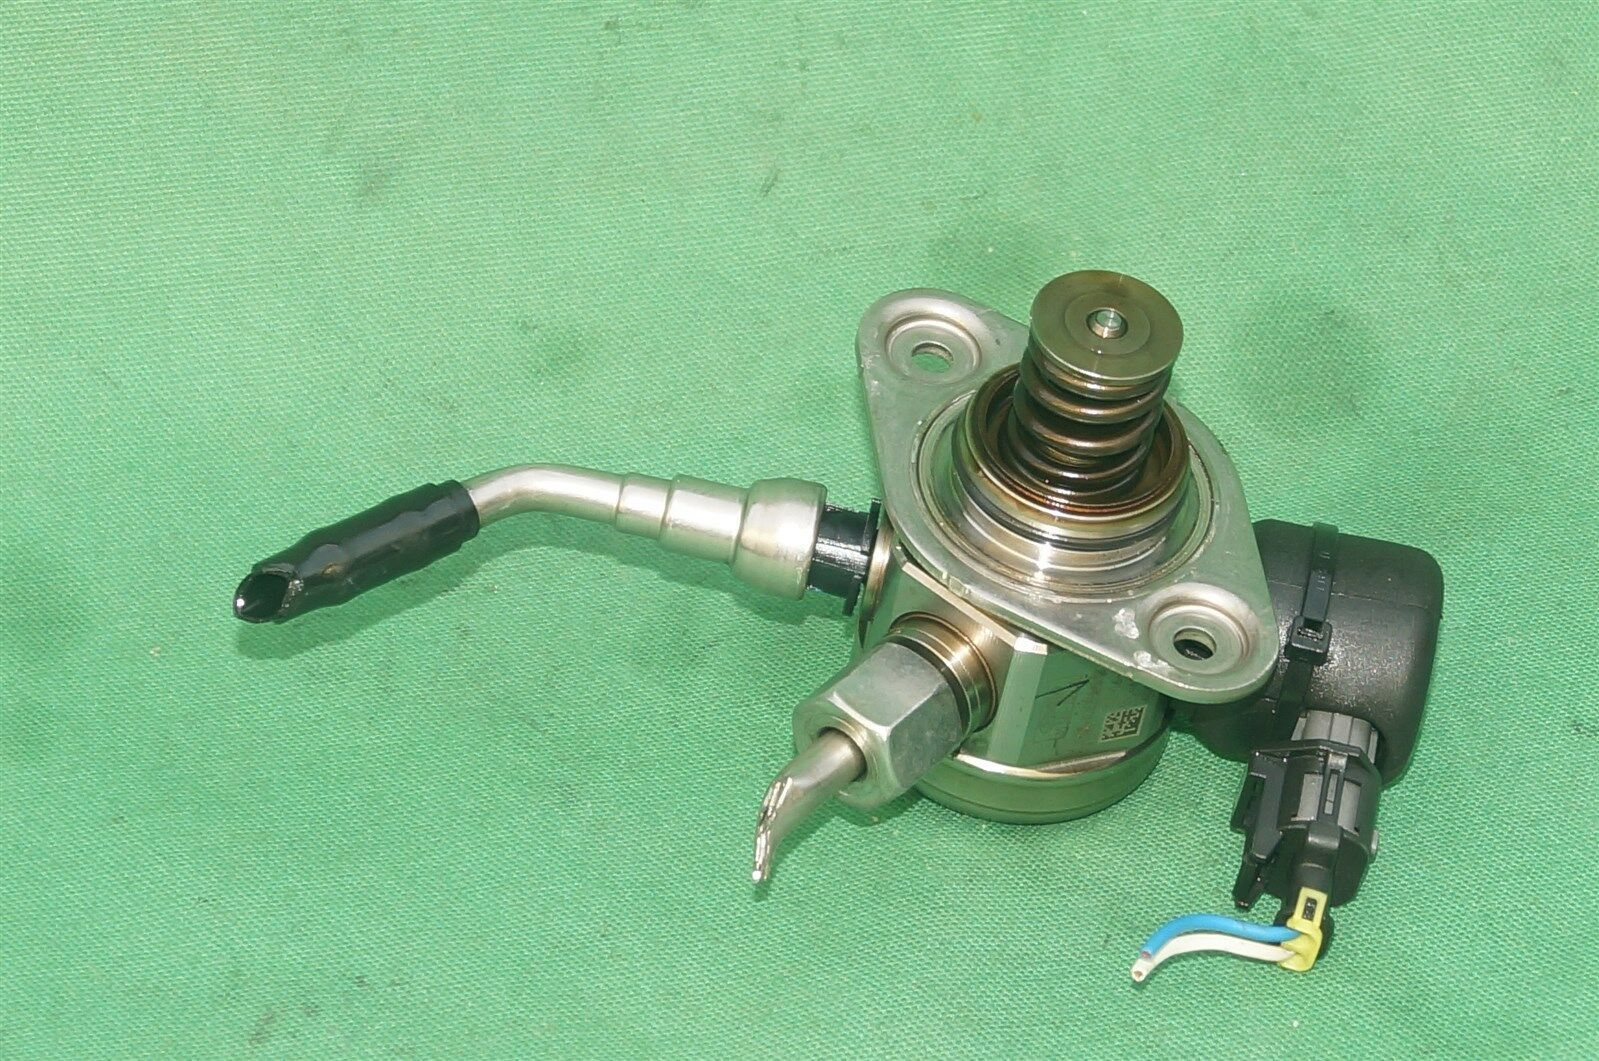 KIA Hyundai GDI Gas Direct Injection High Pressure Fuel Pump HPFP 35320-2b130